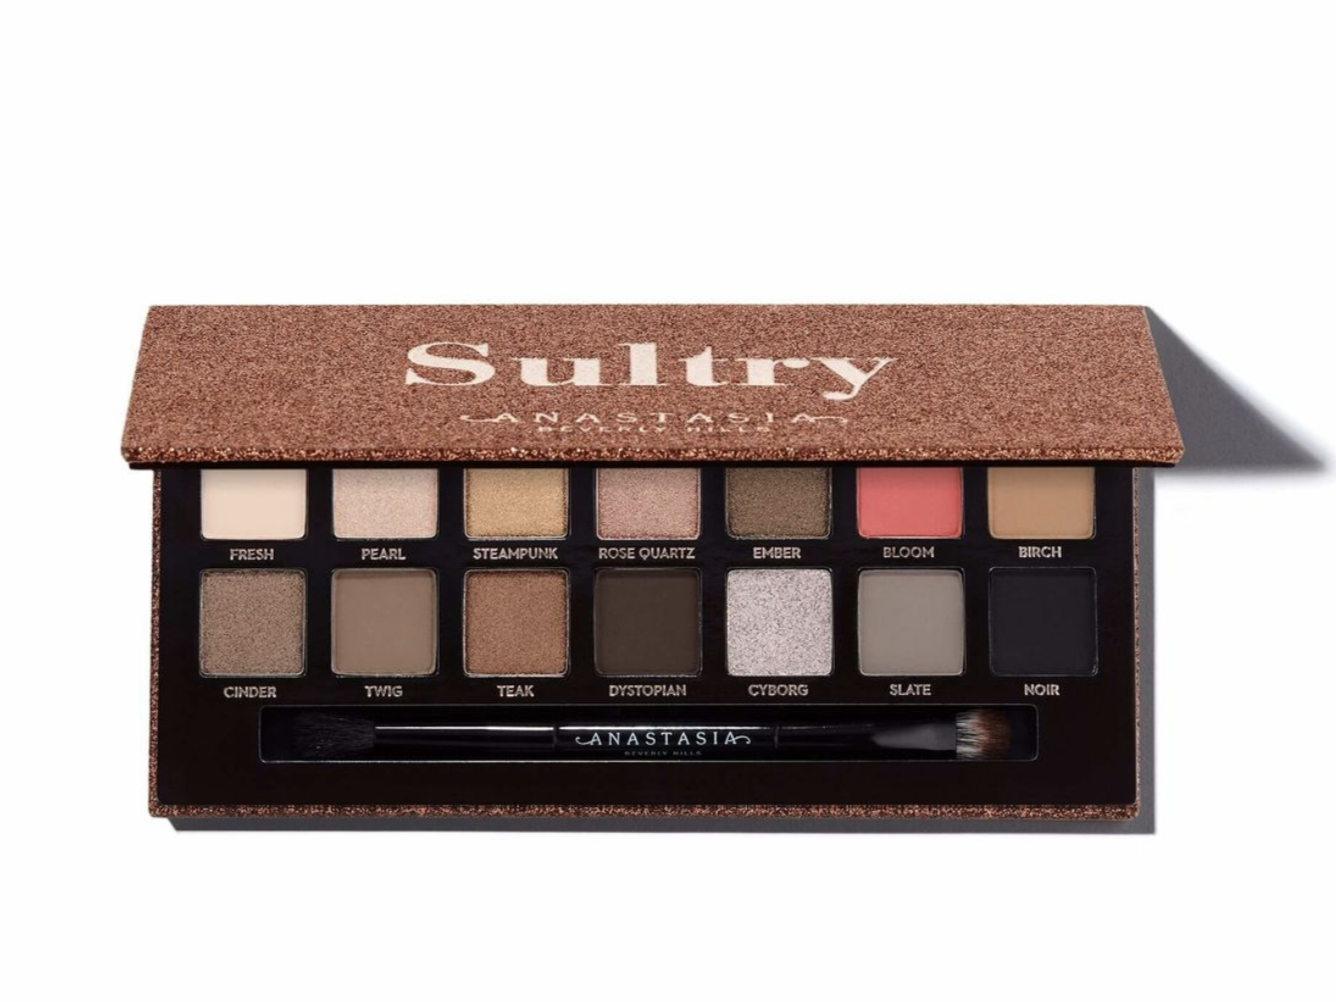 Sultry Eyeshadow Palette   Smoky Eye Palette - Anastasia Beverly Hills 2018-10-04 20-32-11.png